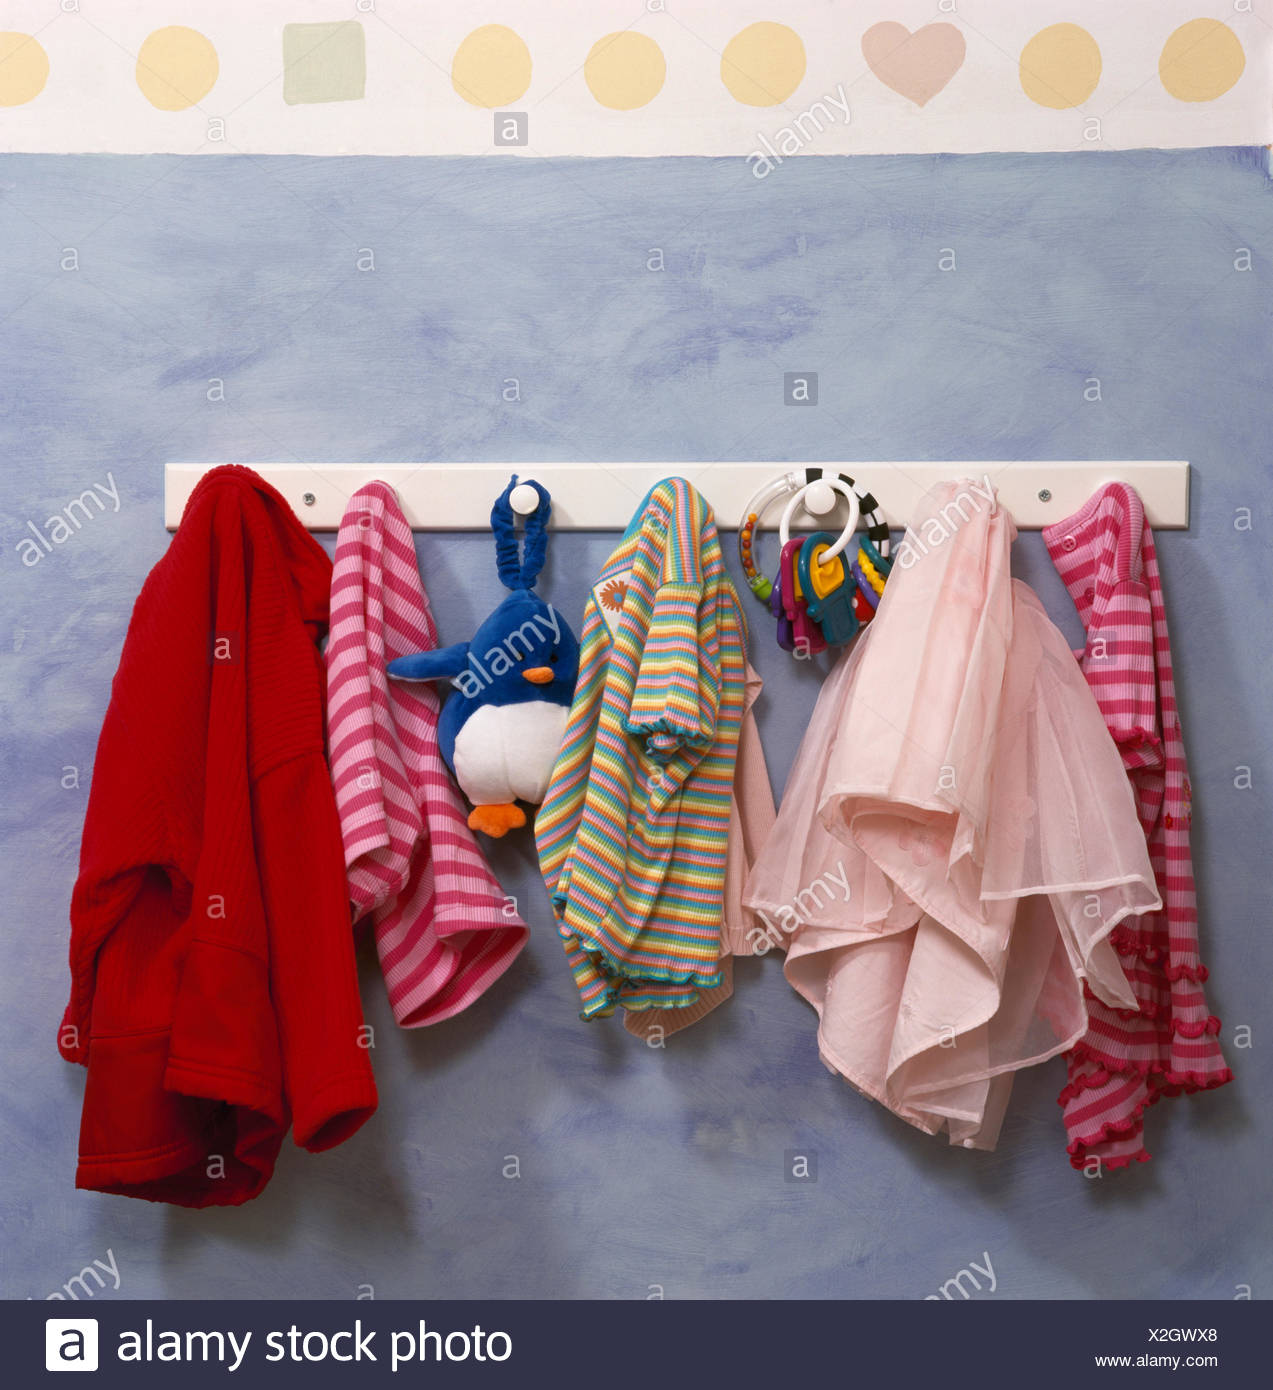 Close-up of children's clothes on a small peg rail - Stock Image